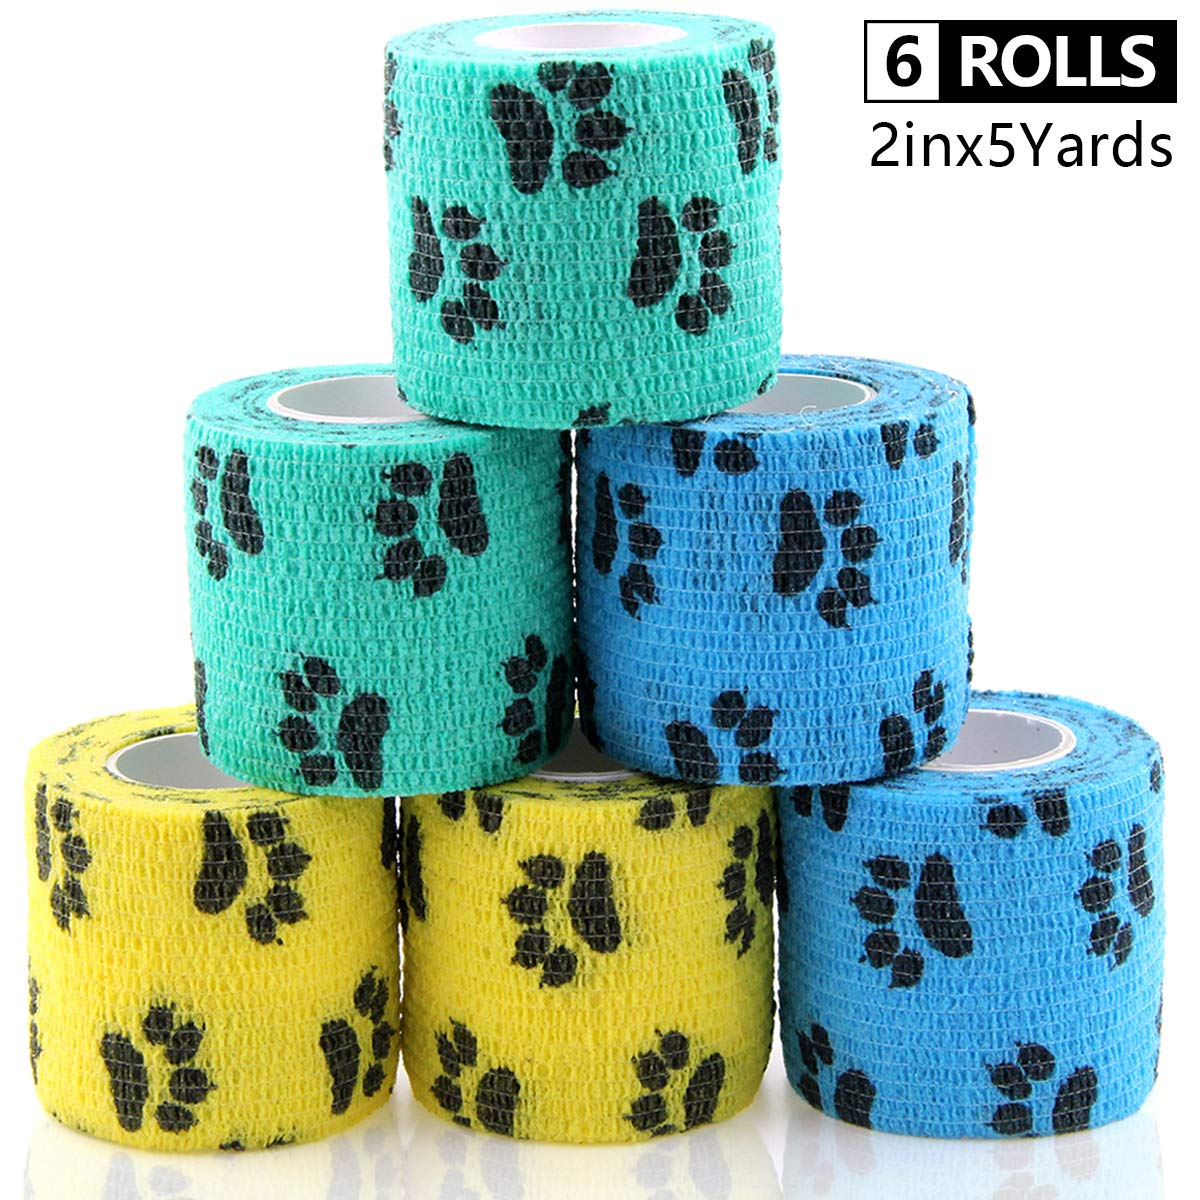 AUPCON Self Adhesive Bandage Wrap Vet Wrap Cohesive Bandages Bulk Dogs Self Adherent Wrap Non-Woven for Pet Animals & Ankle Sprains & Swelling by AUPCON